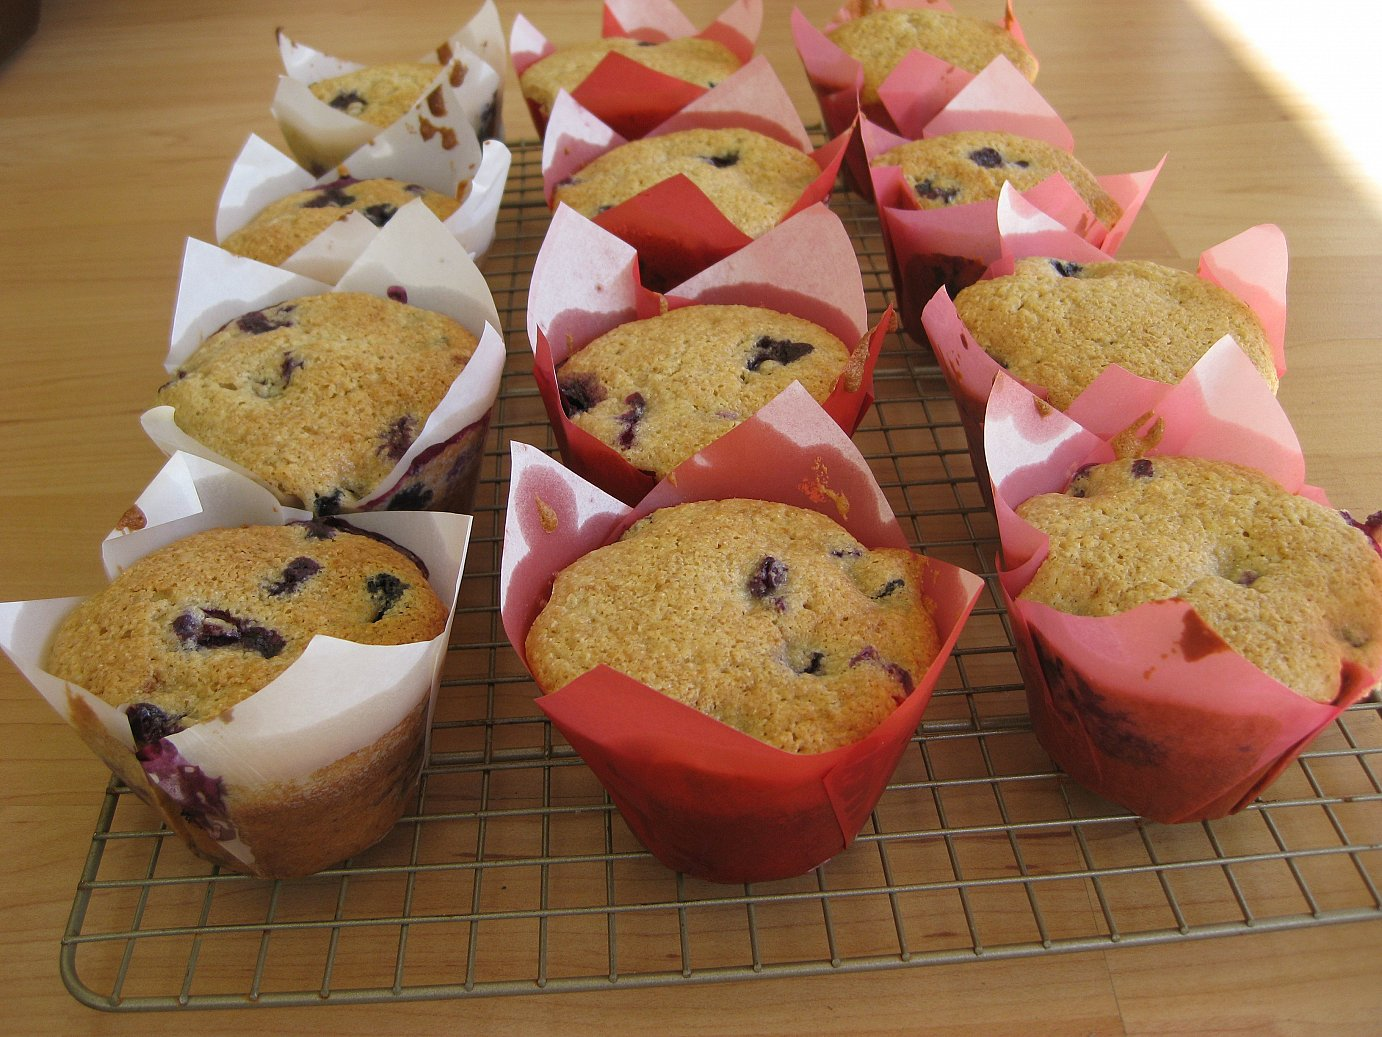 WW Blueberry Muffins and paper liners